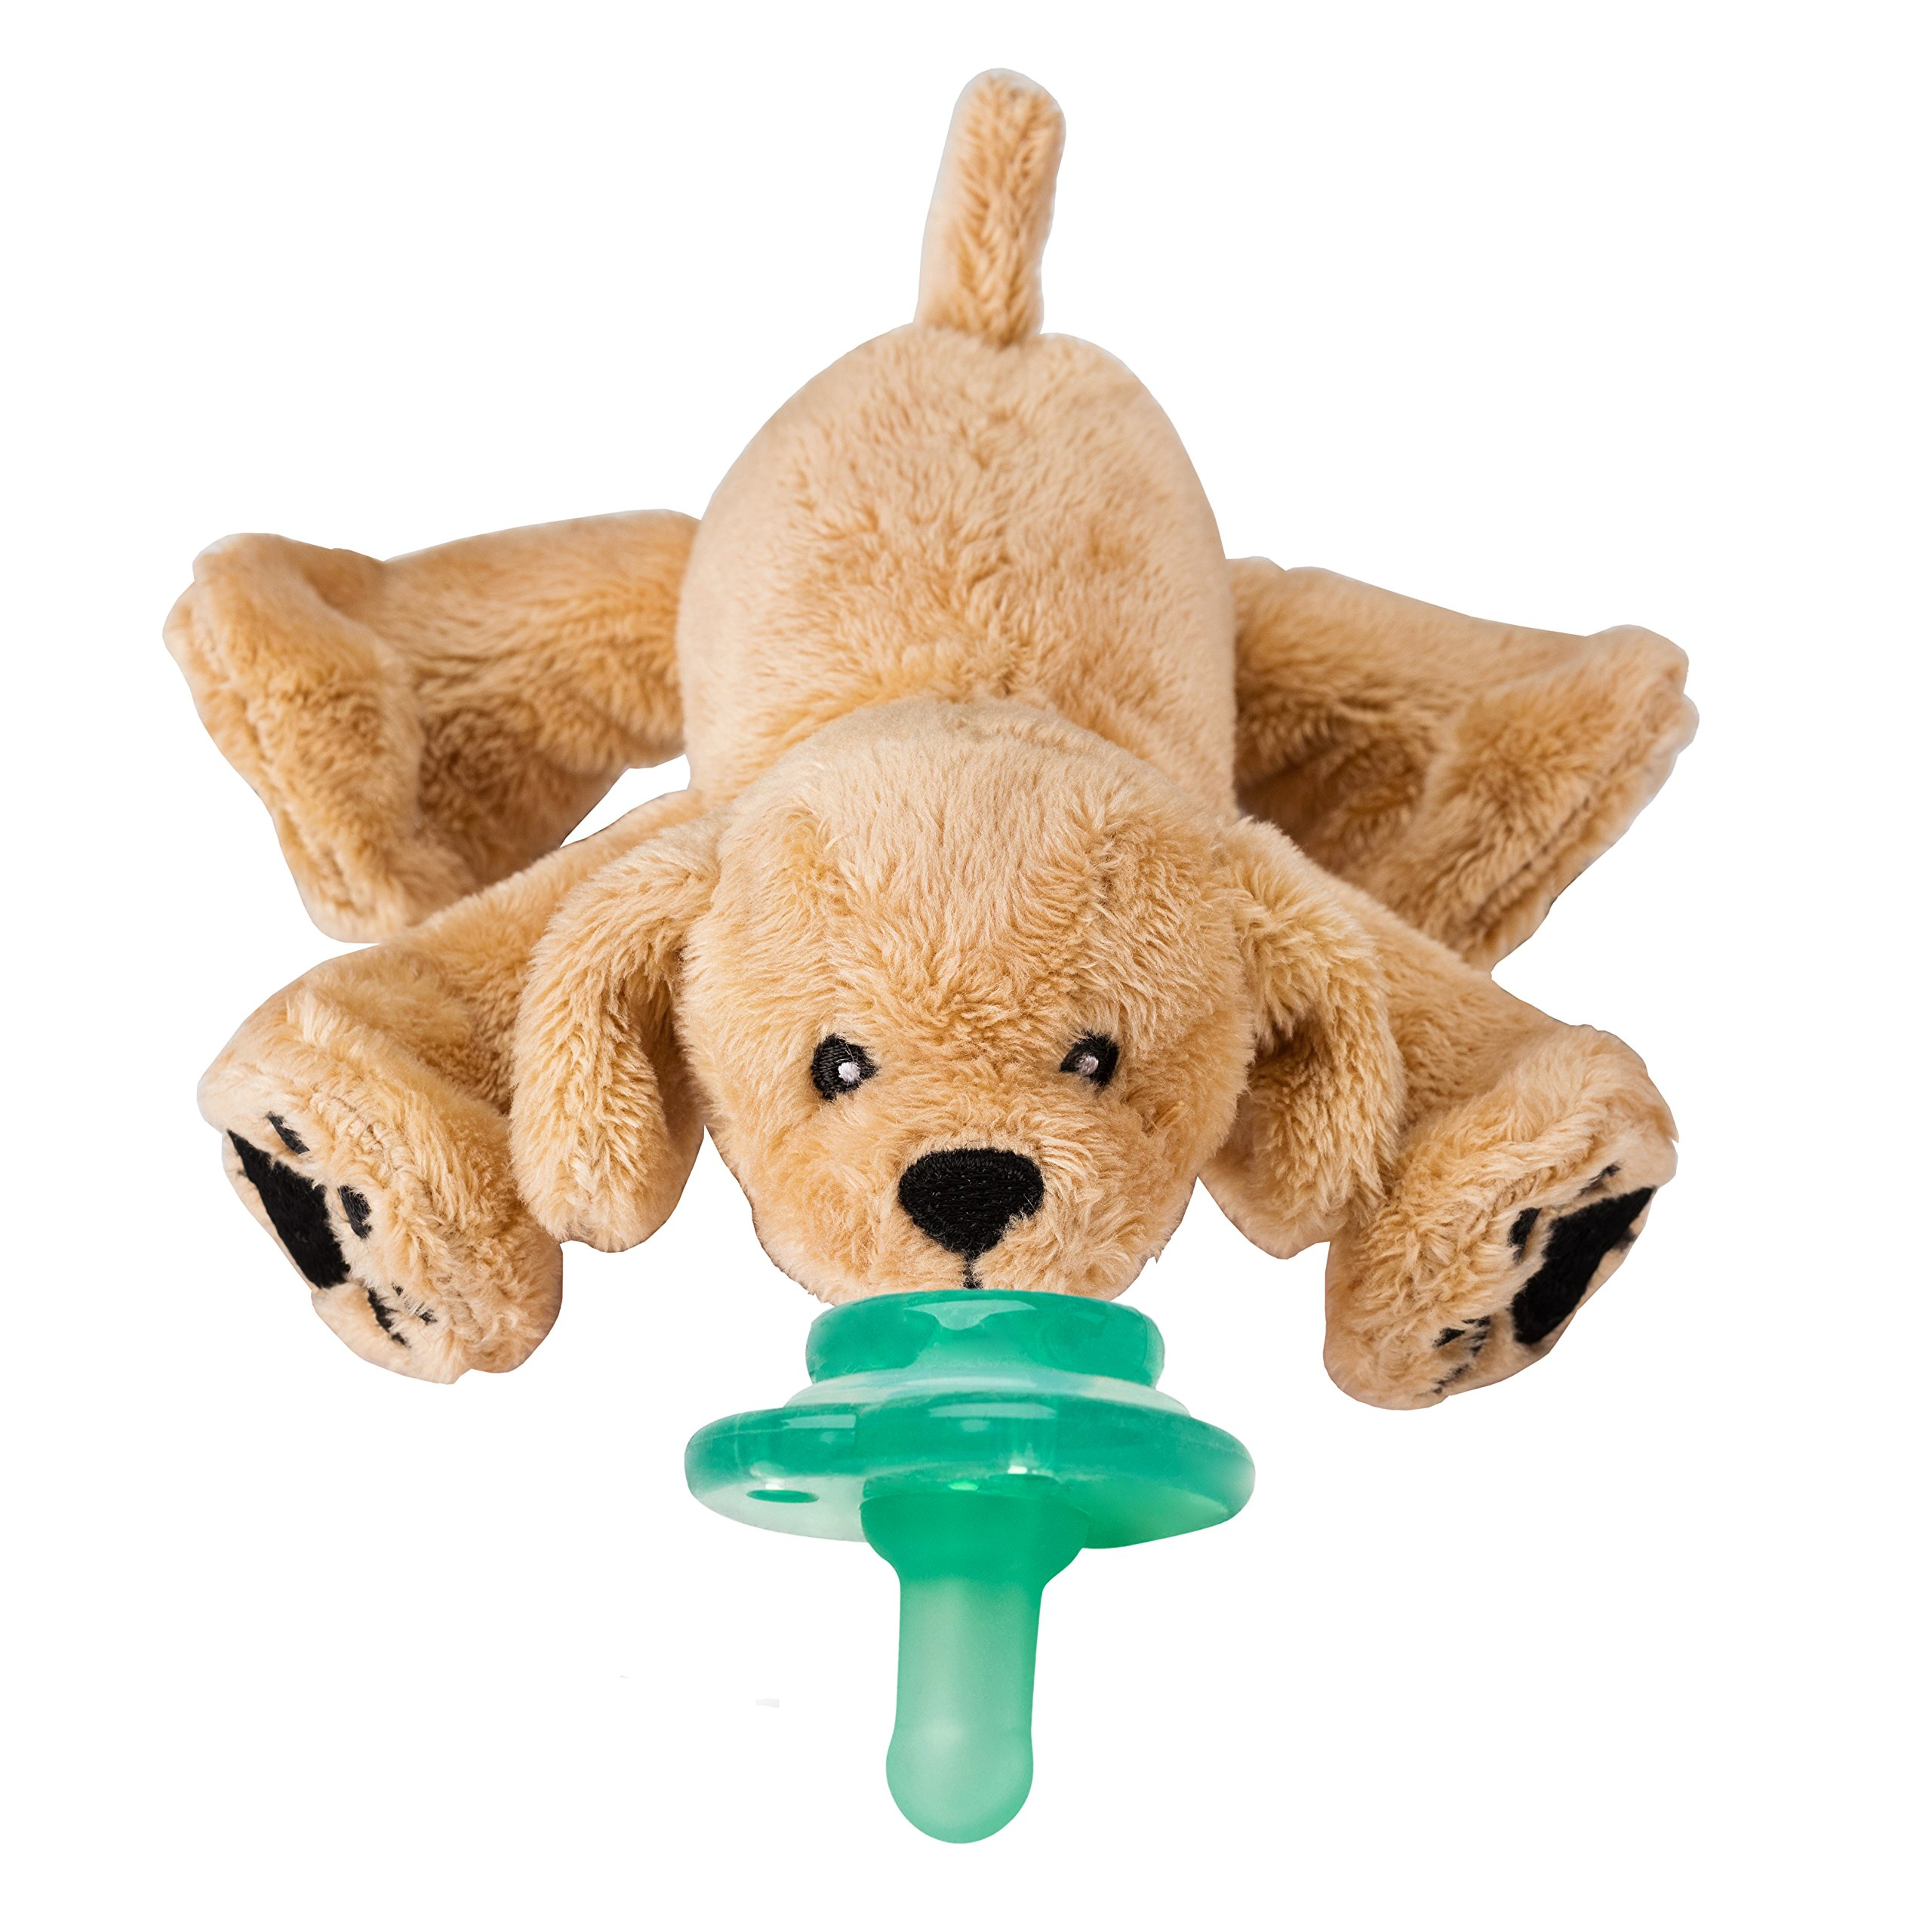 Nookums Paci-Plushies Retriever Buddies - Pacifier Holder (Plush Toy Includes Detachable Pacifier, Use with Multiple Brand Name Pacifiers)